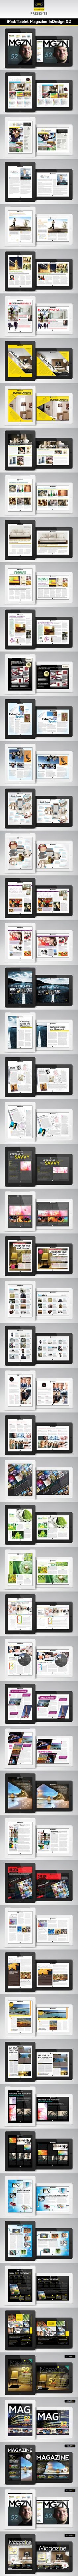 iPad/Tablet Magazine InDesign Layout 02 by BoxedCreative